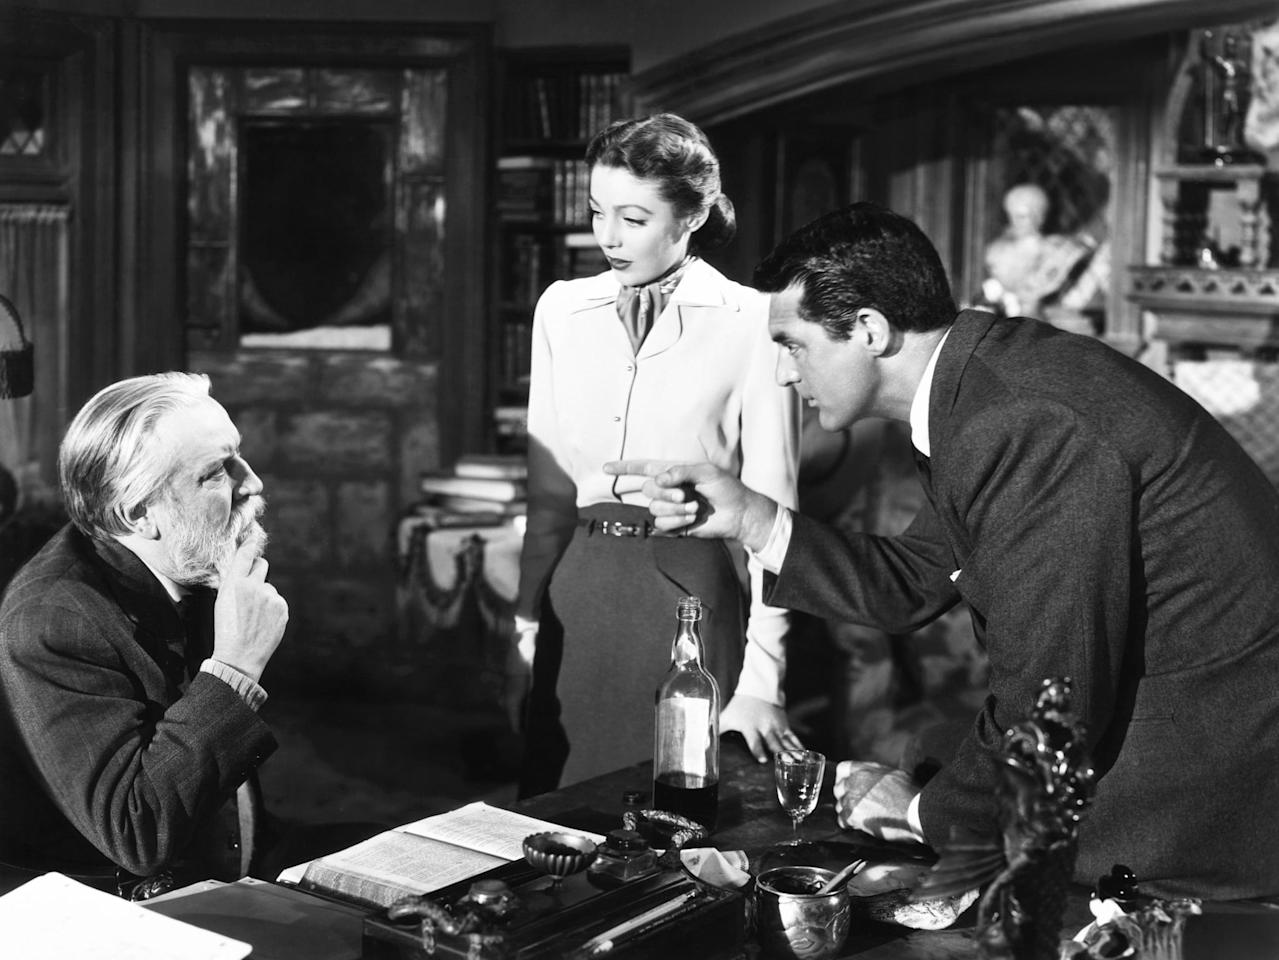 """<p>A bishop (David Niven) receives guidance from an angel (Cary Grant) as he struggles to build a new cathedral. As it turns out, though, the angel isn't there for architectural advice but to help the man save his marriage. (Yes, this is the movie that inspired your favorite Whitney Houston/<a class=""""sugar-inline-link ga-track"""" title=""""Latest photos and news for Denzel Washington"""" href=""""https://www.popsugar.com/Denzel-Washington"""" target=""""_blank"""" data-ga-category=""""Related"""" data-ga-label=""""https://www.popsugar.com/Denzel-Washington"""" data-ga-action=""""&lt;-related-&gt; Links"""">Denzel Washington</a> movie, 1996's <strong>The Preacher's Wife</strong>.) </p> <p><a href=""""http://www.netflix.com/title/309541"""" target=""""_blank"""" class=""""ga-track"""" data-ga-category=""""Related"""" data-ga-label=""""http://www.netflix.com/title/309541"""" data-ga-action=""""In-Line Links"""">Watch <strong>The Bishop's Wife</strong> on Netflix.</a></p>"""